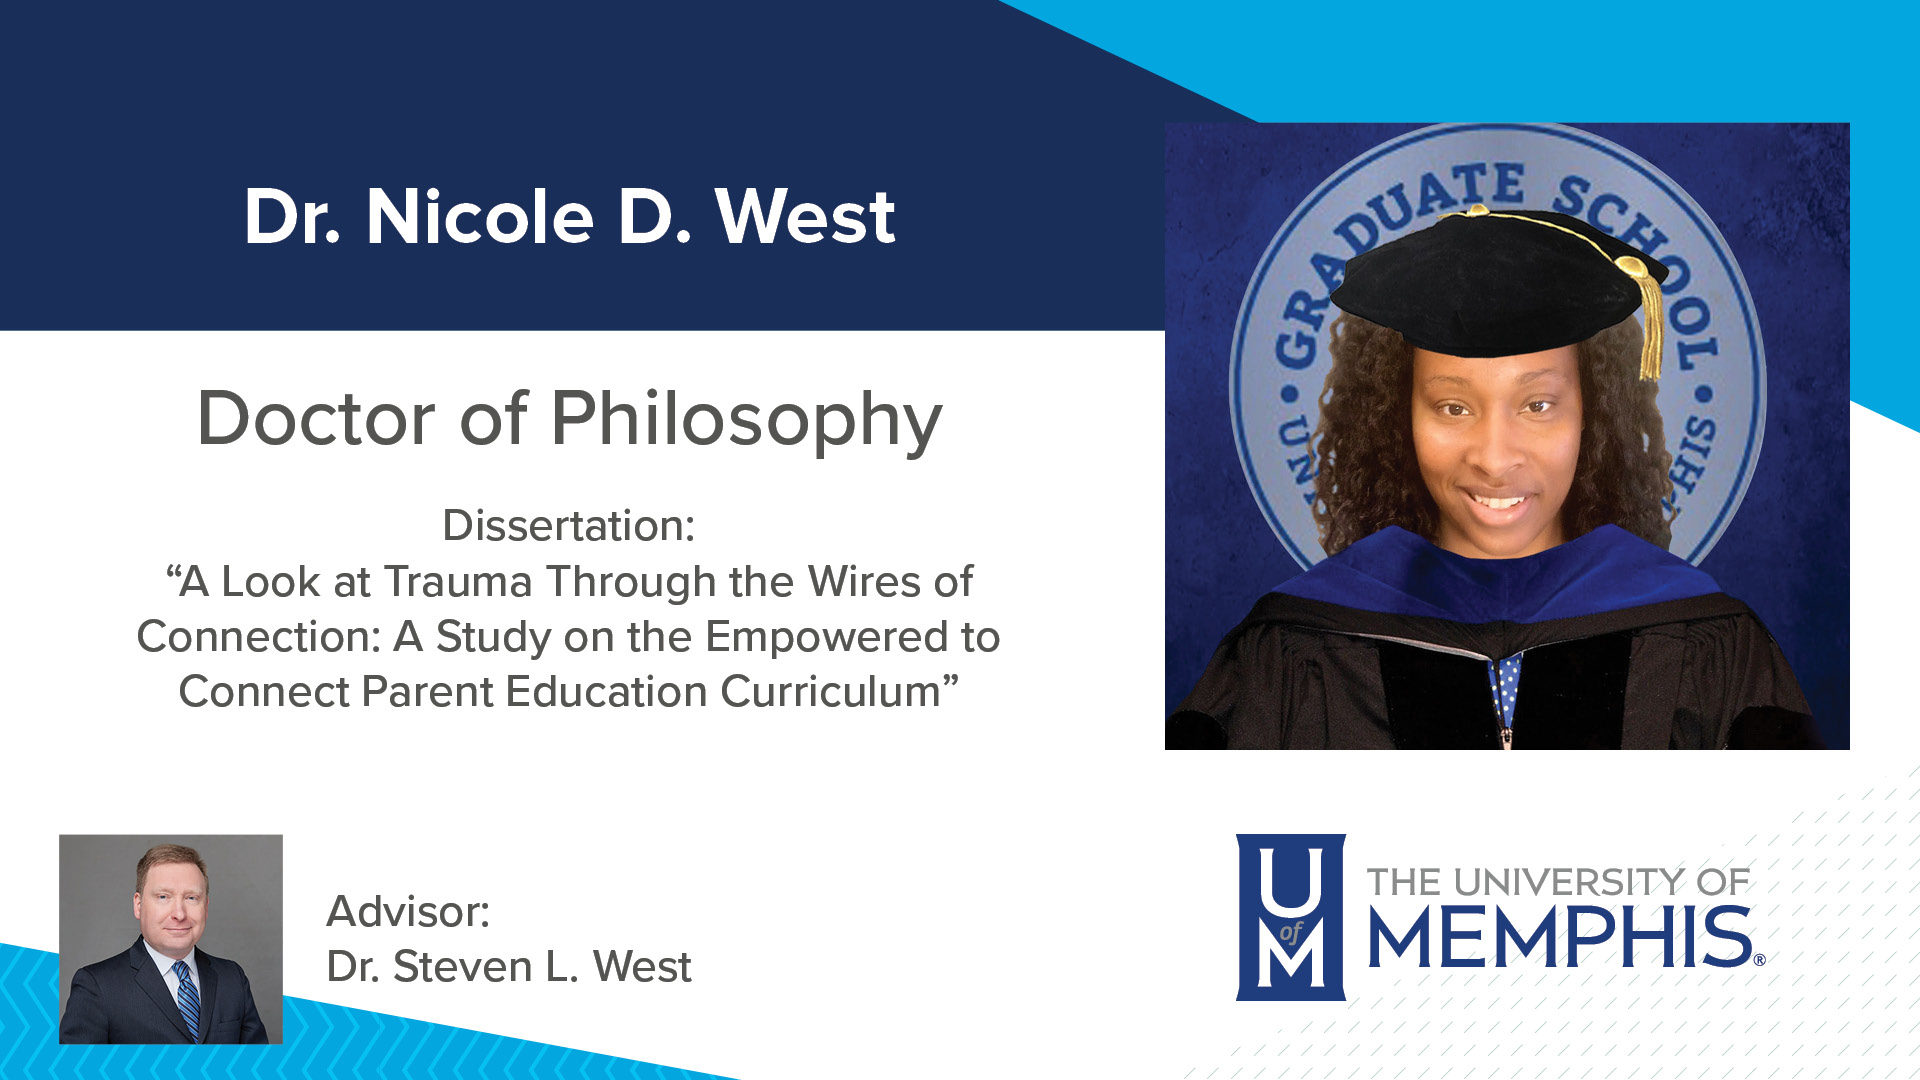 """Dr. Nicole D. West Dissertation: """"A Look at Trauma through the Wires of Connection: A Study on the Empowered to Connect Parent Education Curriculum """" Major Professor: Dr. Steven L. West"""